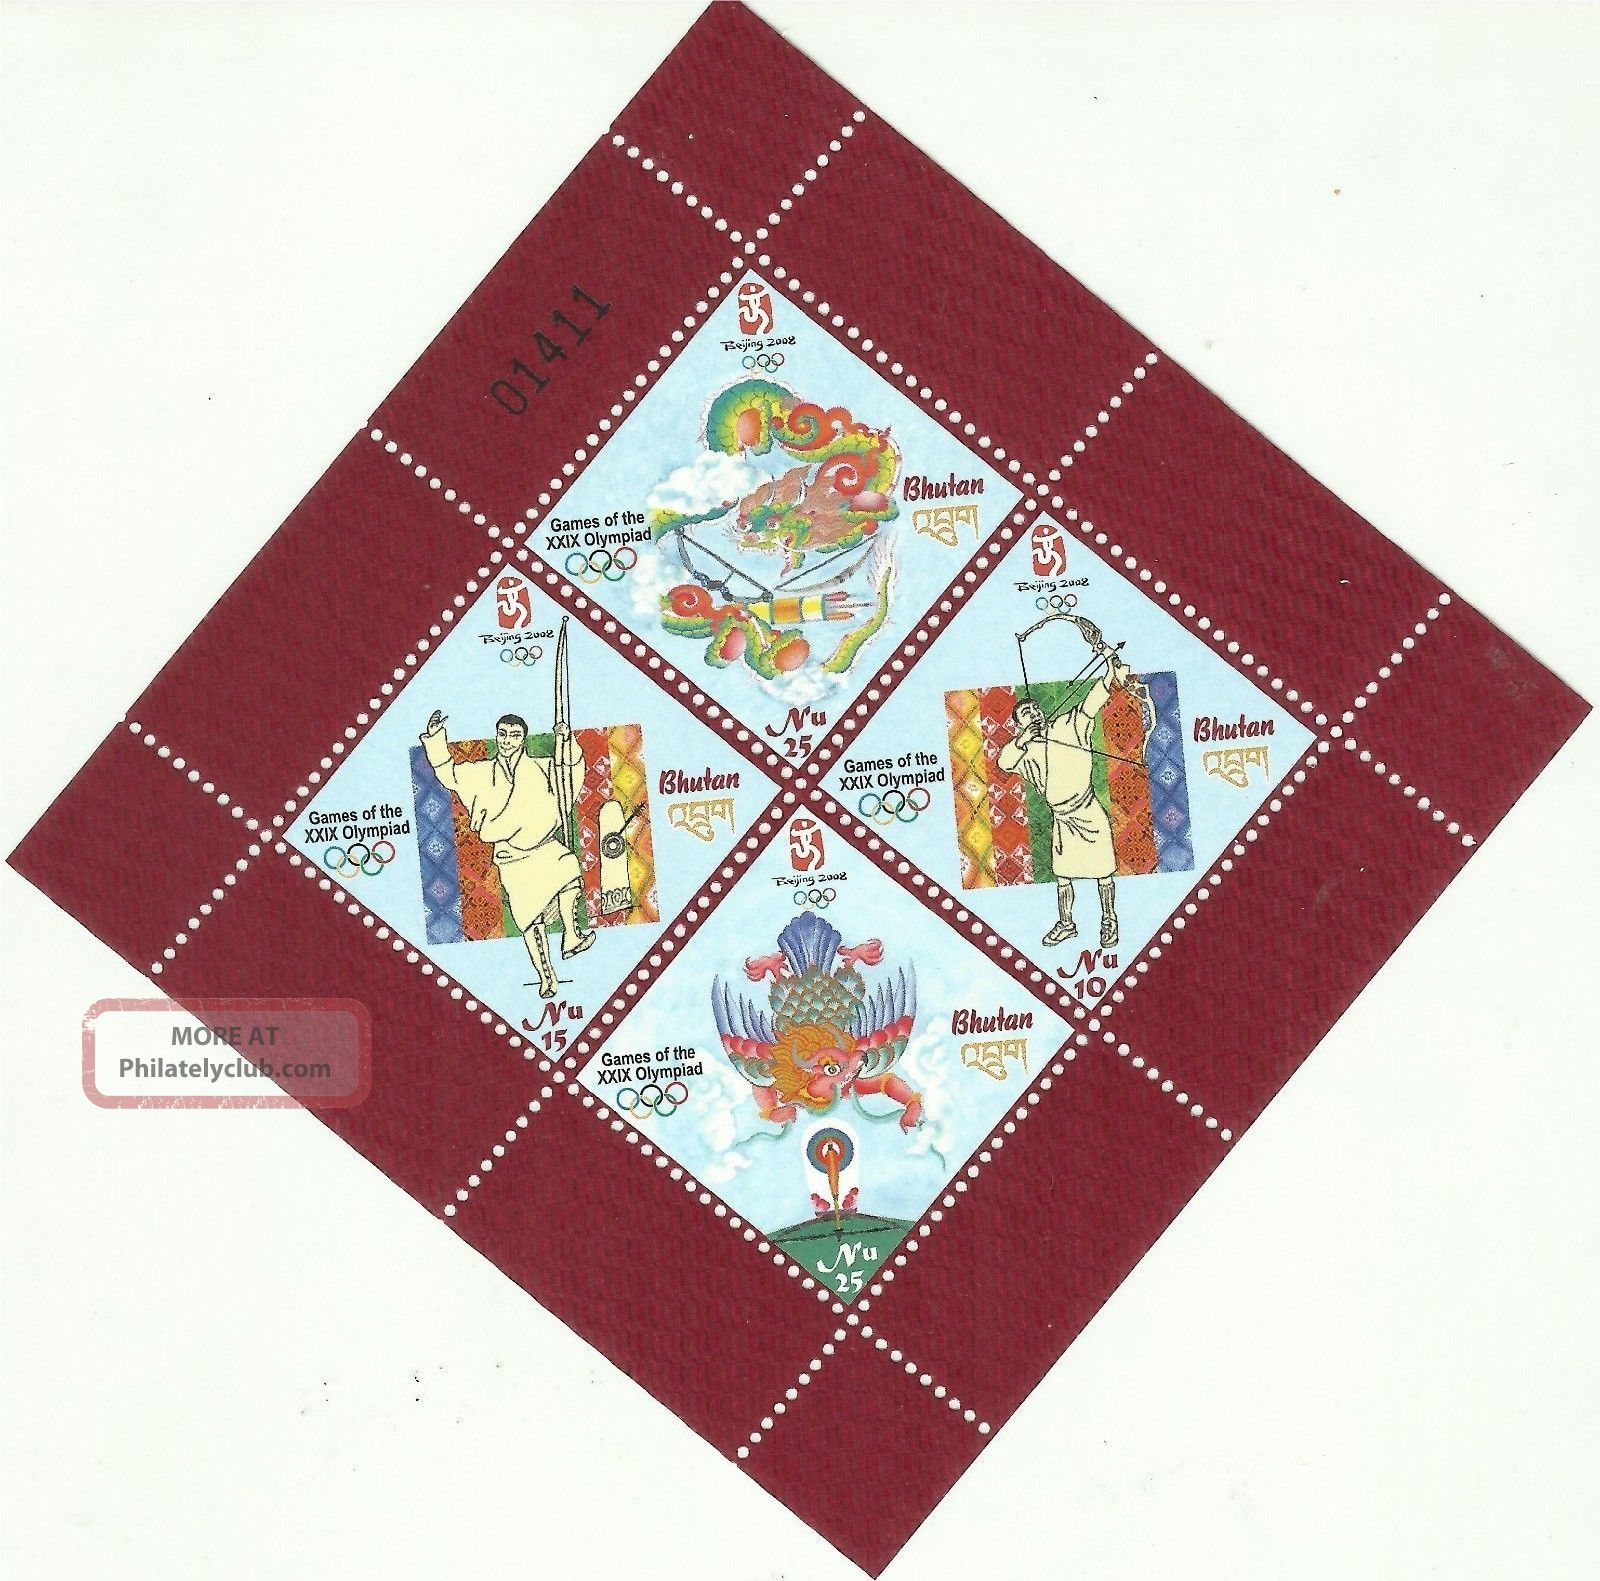 Stamp Bhutan 2008 Beijing Olympic Games Diamond Shape Miniature Sheet Finest Asia photo